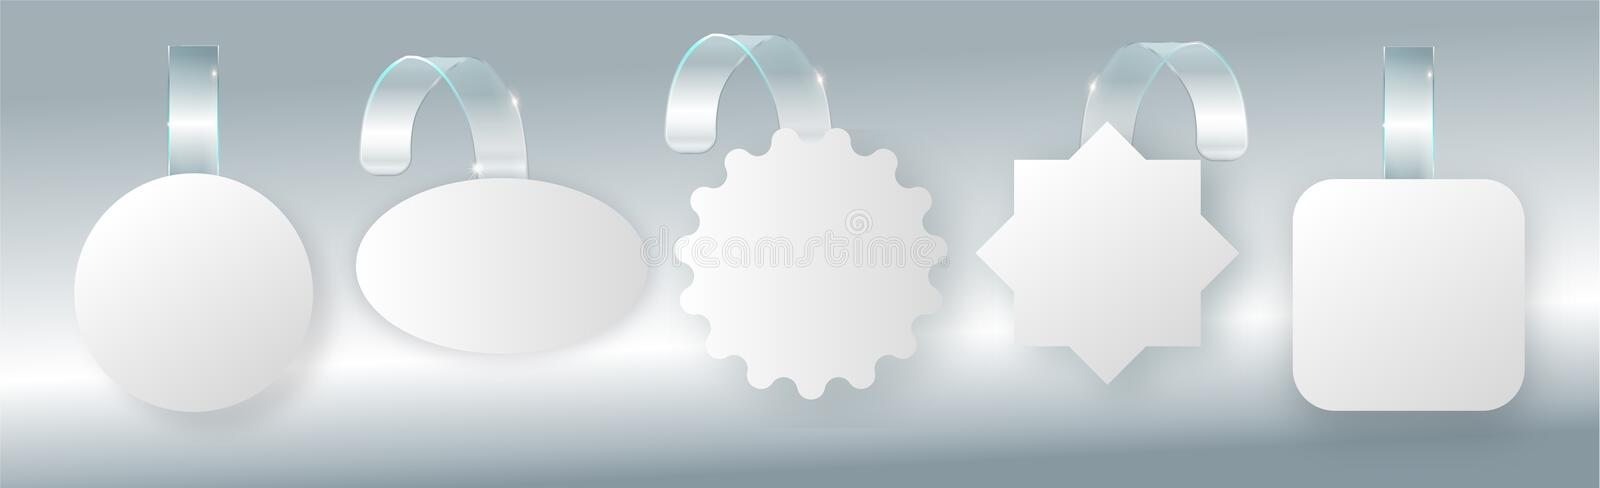 Advertising sale wobbler on bended transparent stripe. White round point tag for supermarket sales wobblers on store stock illustration